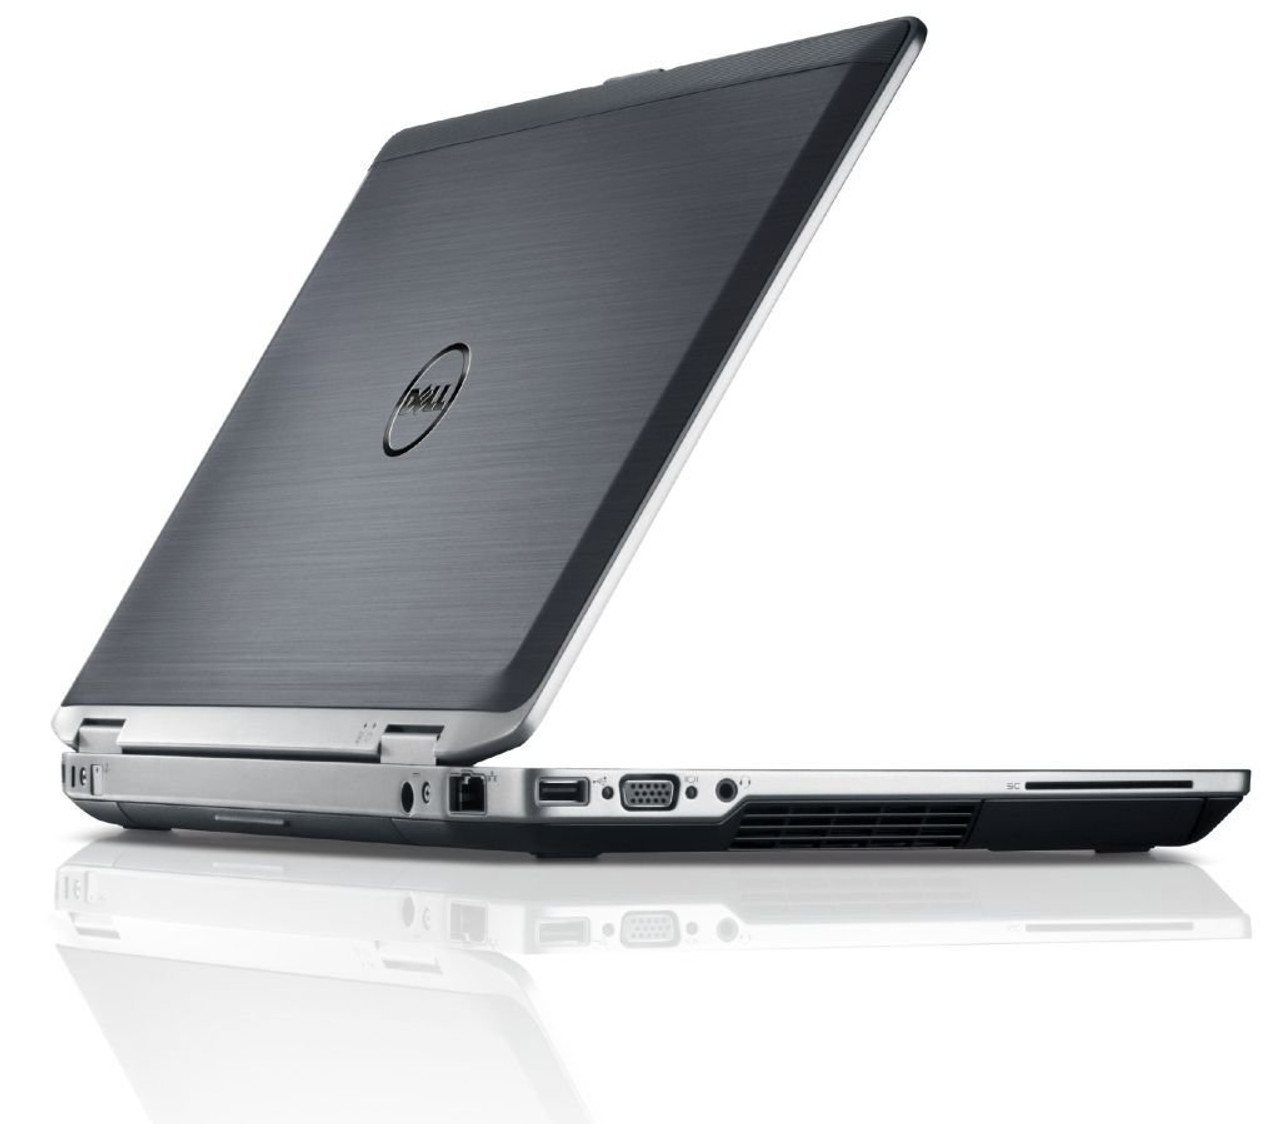 Dell Latitude E6430 Laptop Core i5 2.6GHz, 4GB Ram, 320GB HDD, DVD-RW, Windows 10 Pro 64 Notebook